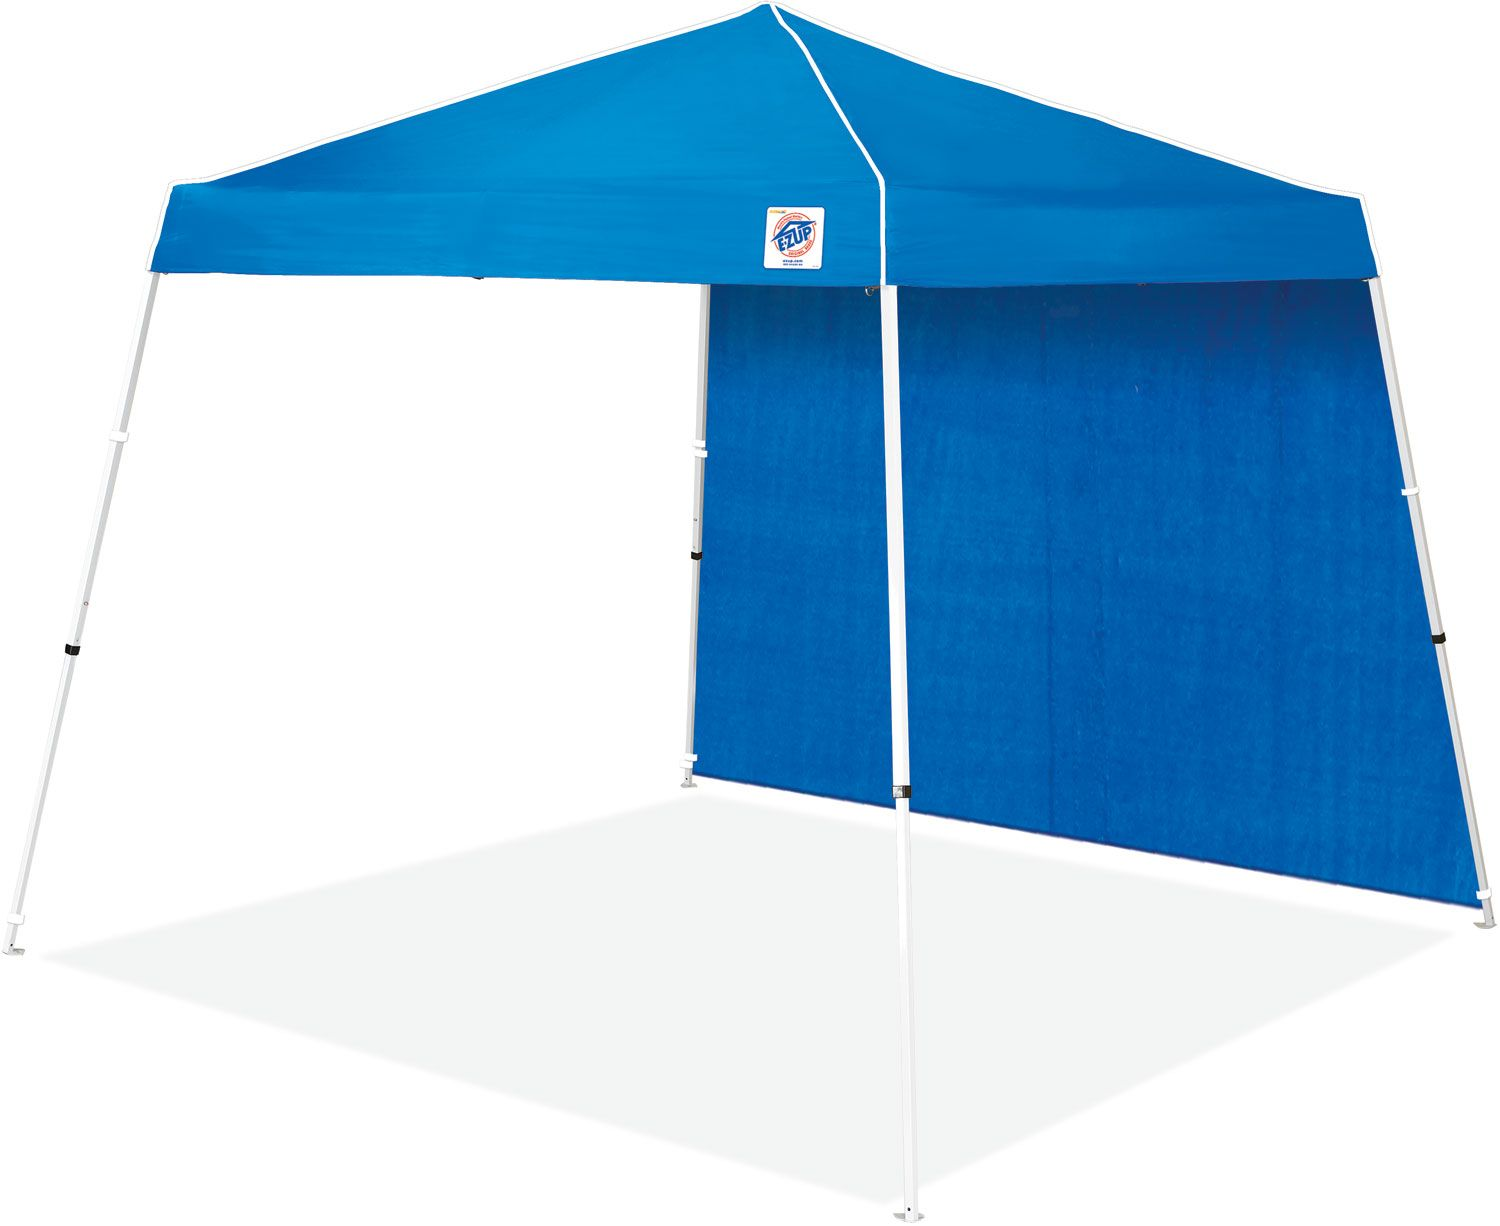 E-Z UP 10 FT. x 10 FT. Sierra II Duralon Sidewall | DICKu0027S Sporting Goods  sc 1 st  DICKu0027S Sporting Goods & E-Z UP 10 FT. x 10 FT. Sierra II Duralon Sidewall | DICKu0027S ...